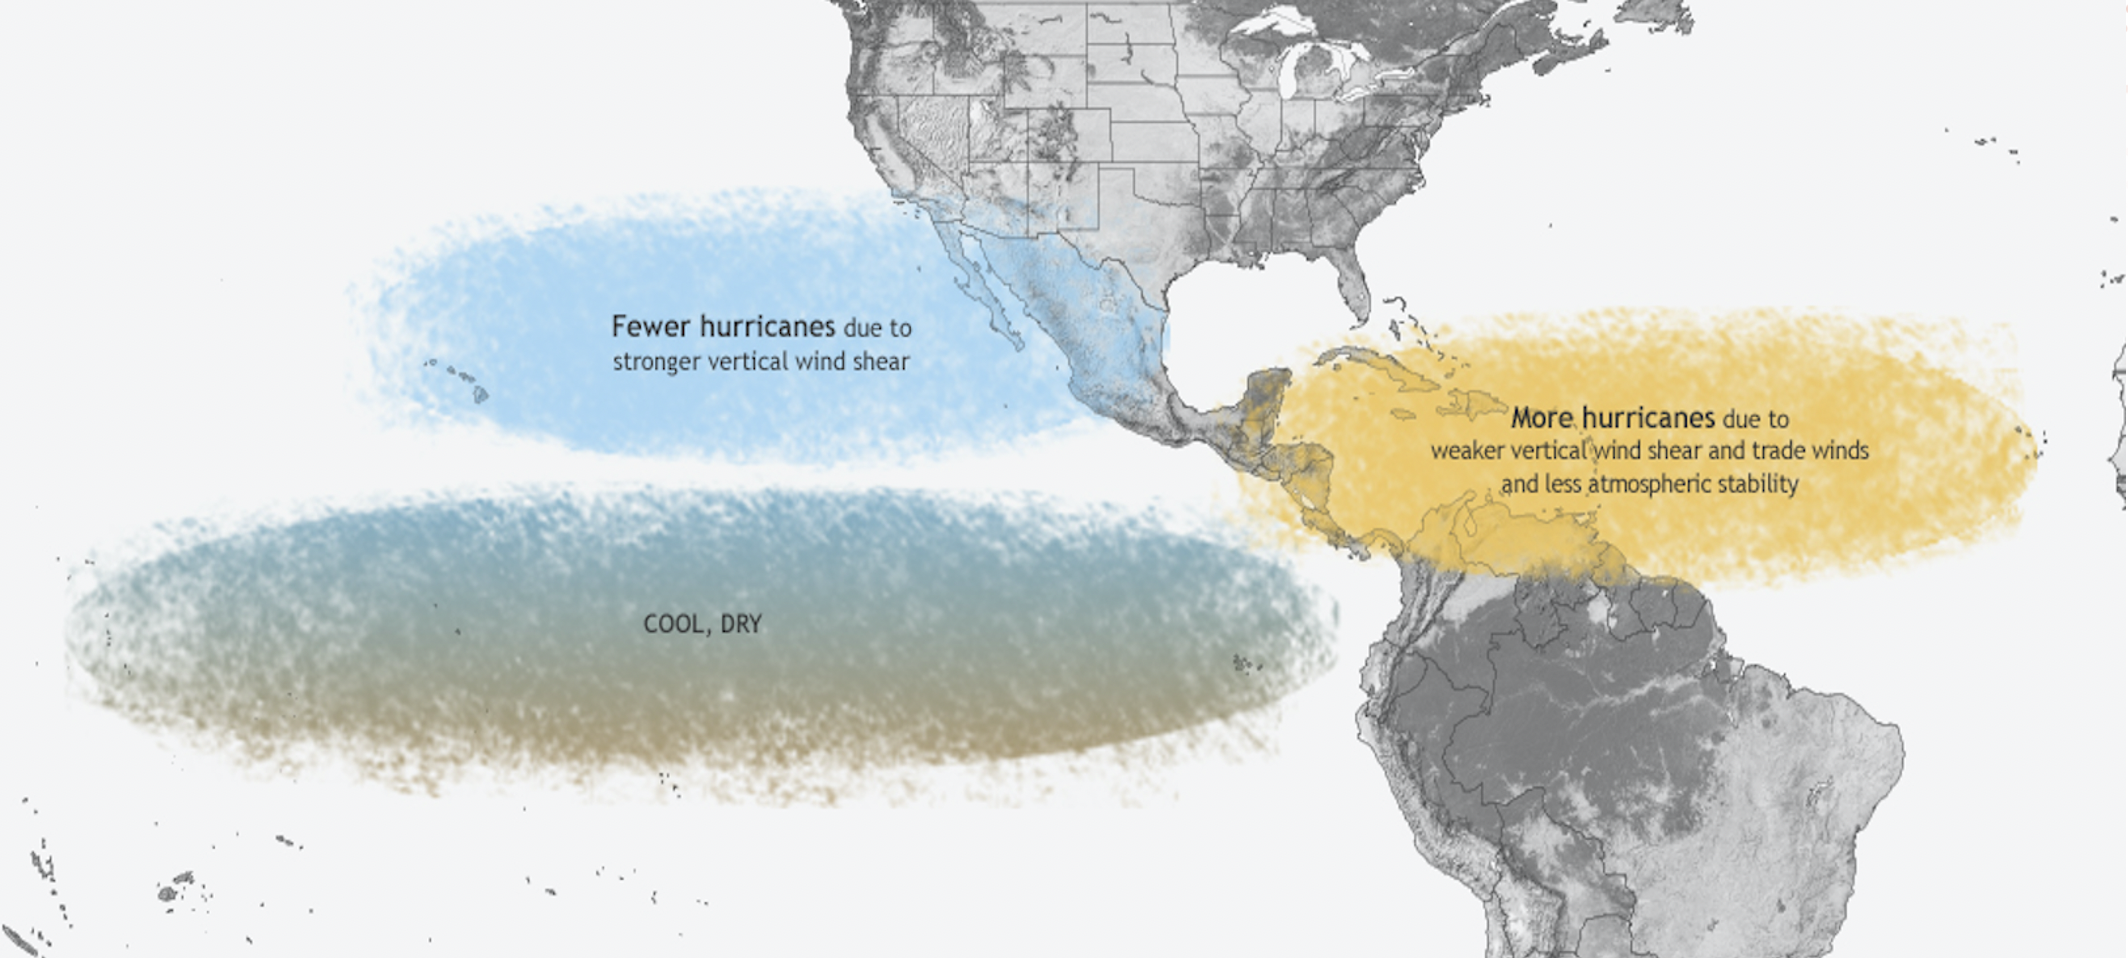 The effects of La Nina on the Atlantic Hurricane Season: Low wind shear supports storm development